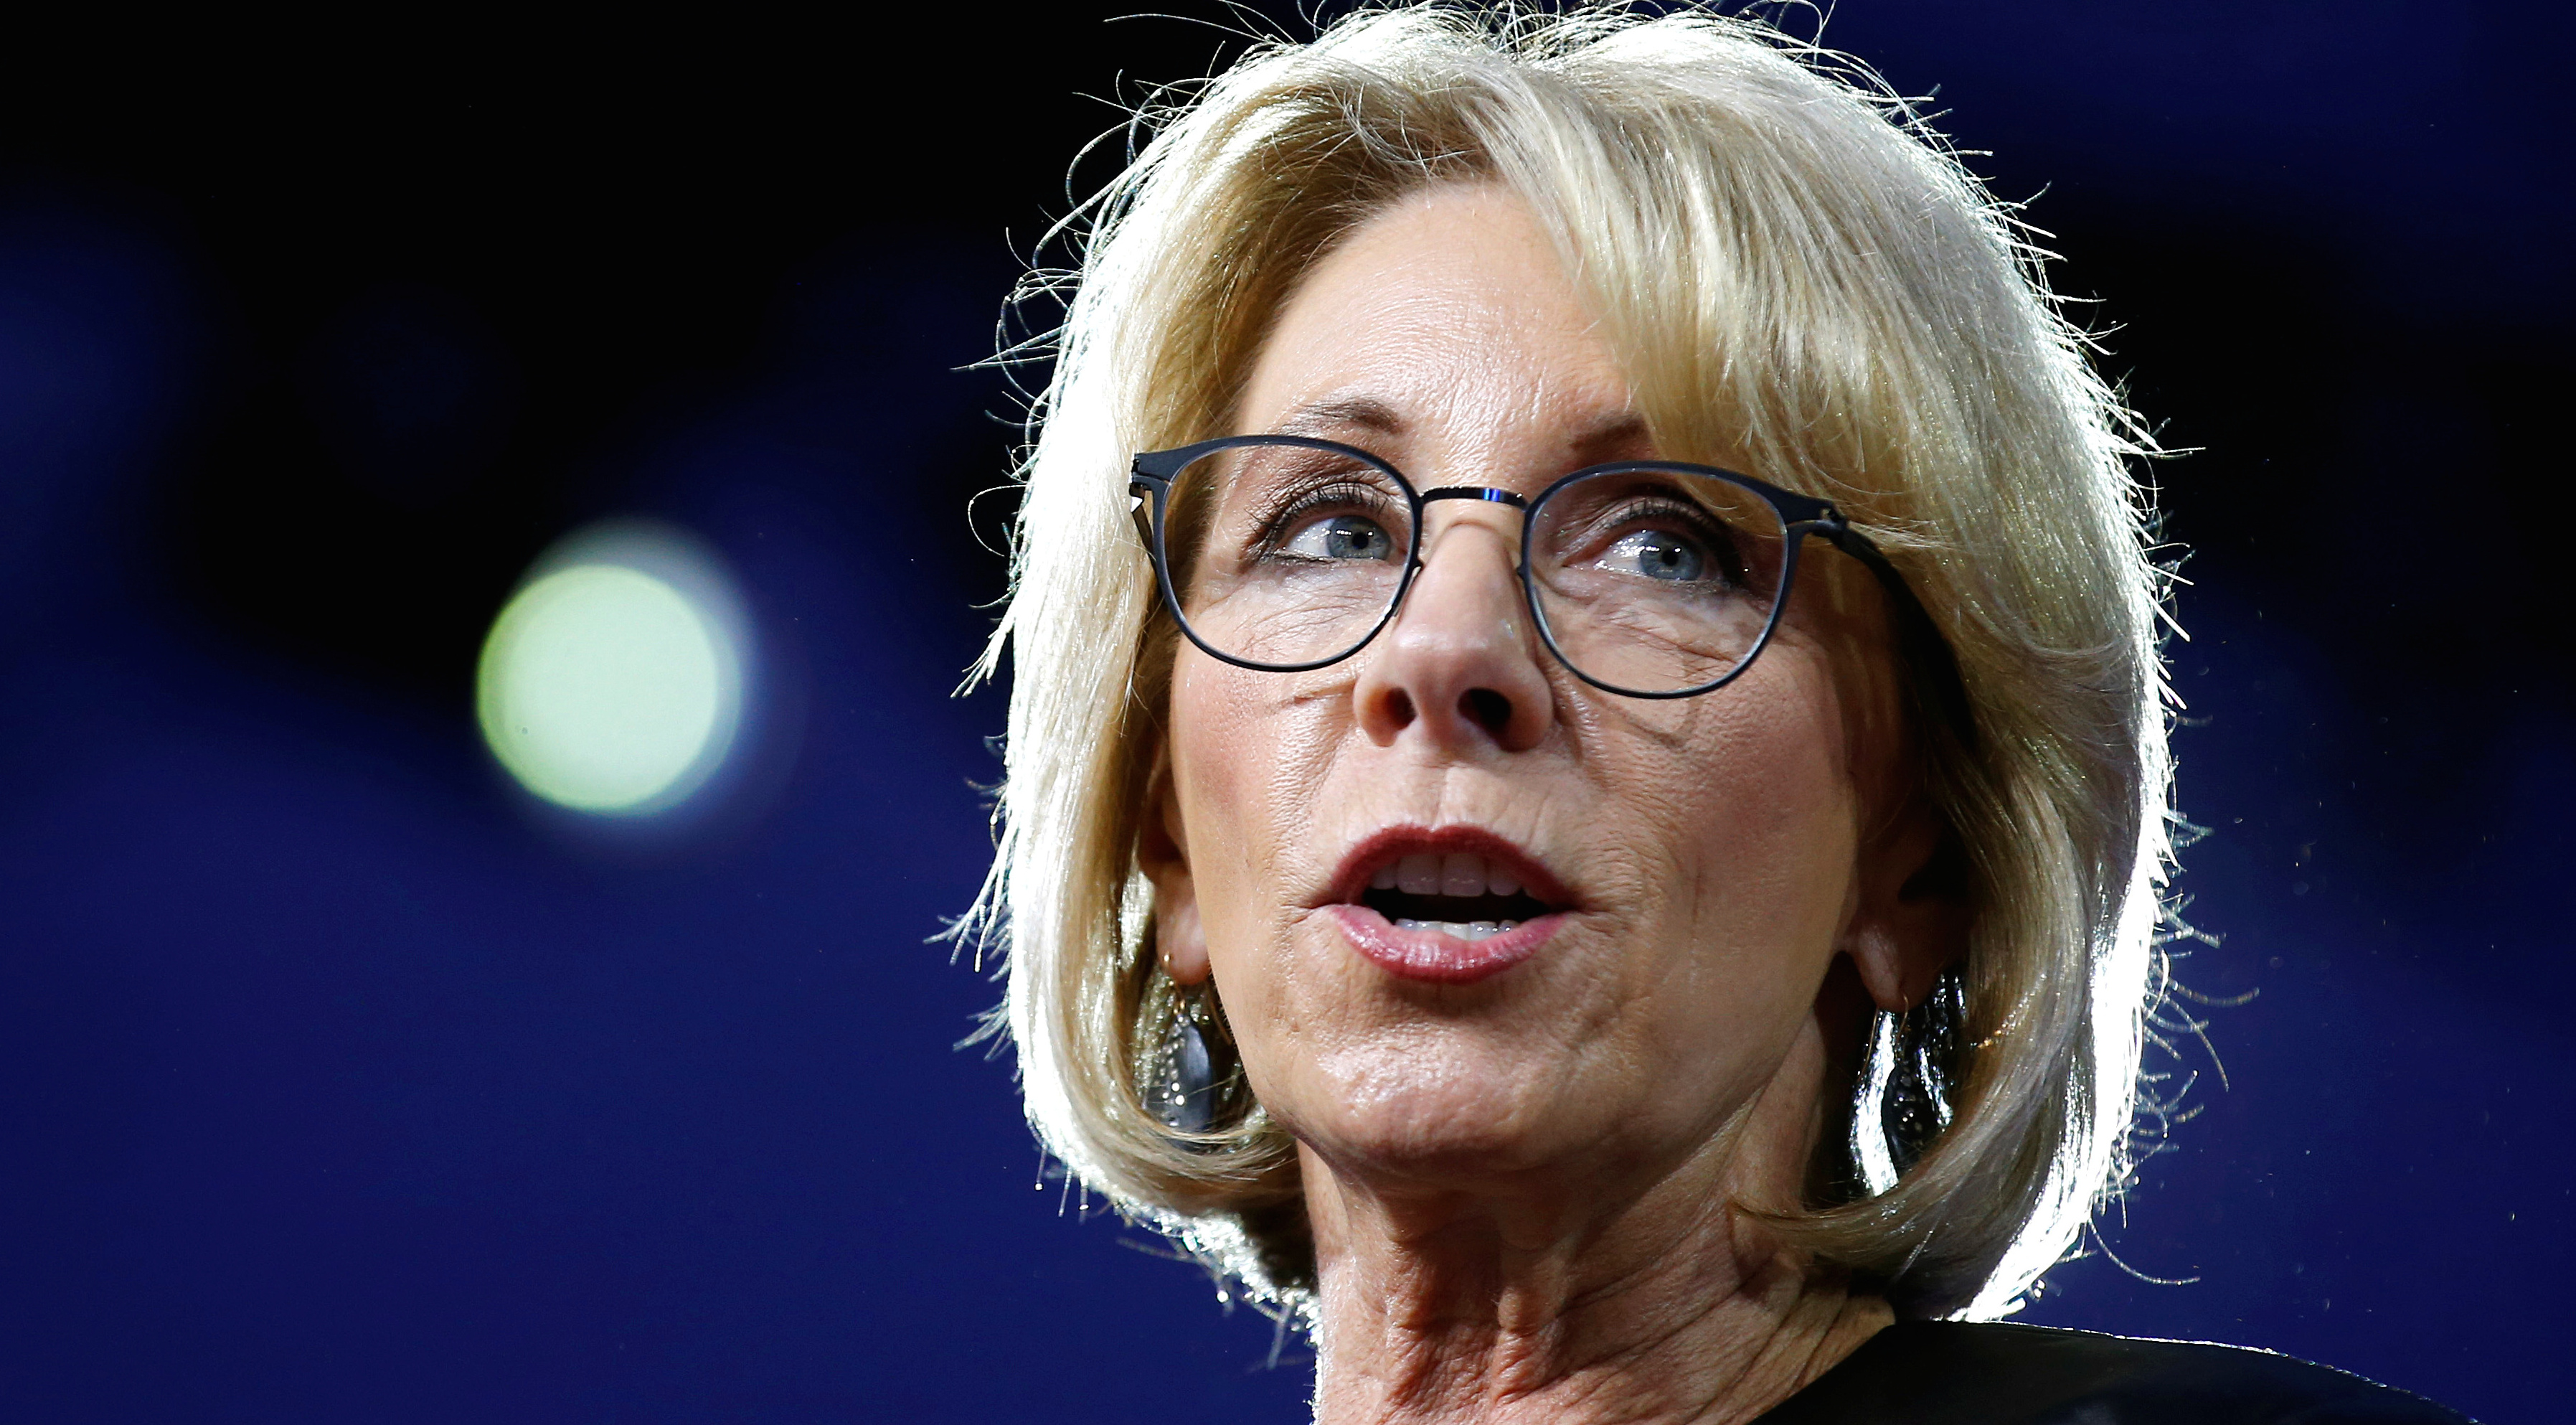 U.S. Secretary of Education Betsy DeVos speaks at the Conservative Political Action Conference (CPAC) in National Harbor, Maryland, U.S., February 23, 2017.